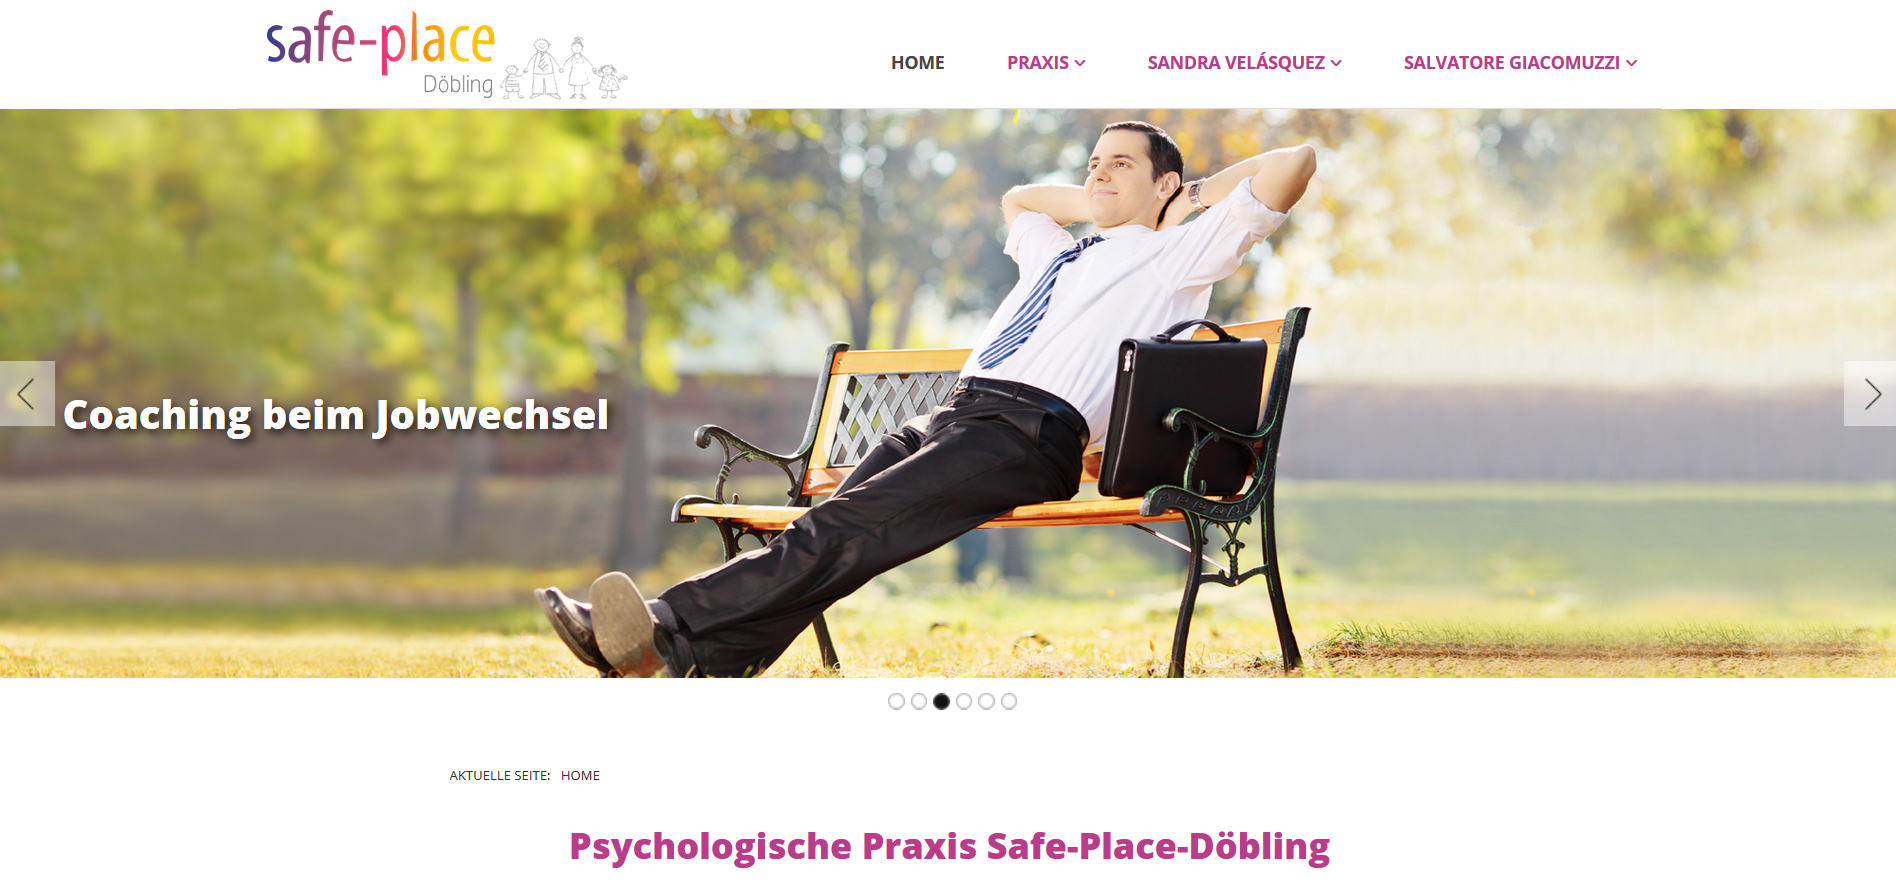 Website Praxis Safe-Place-Döbling